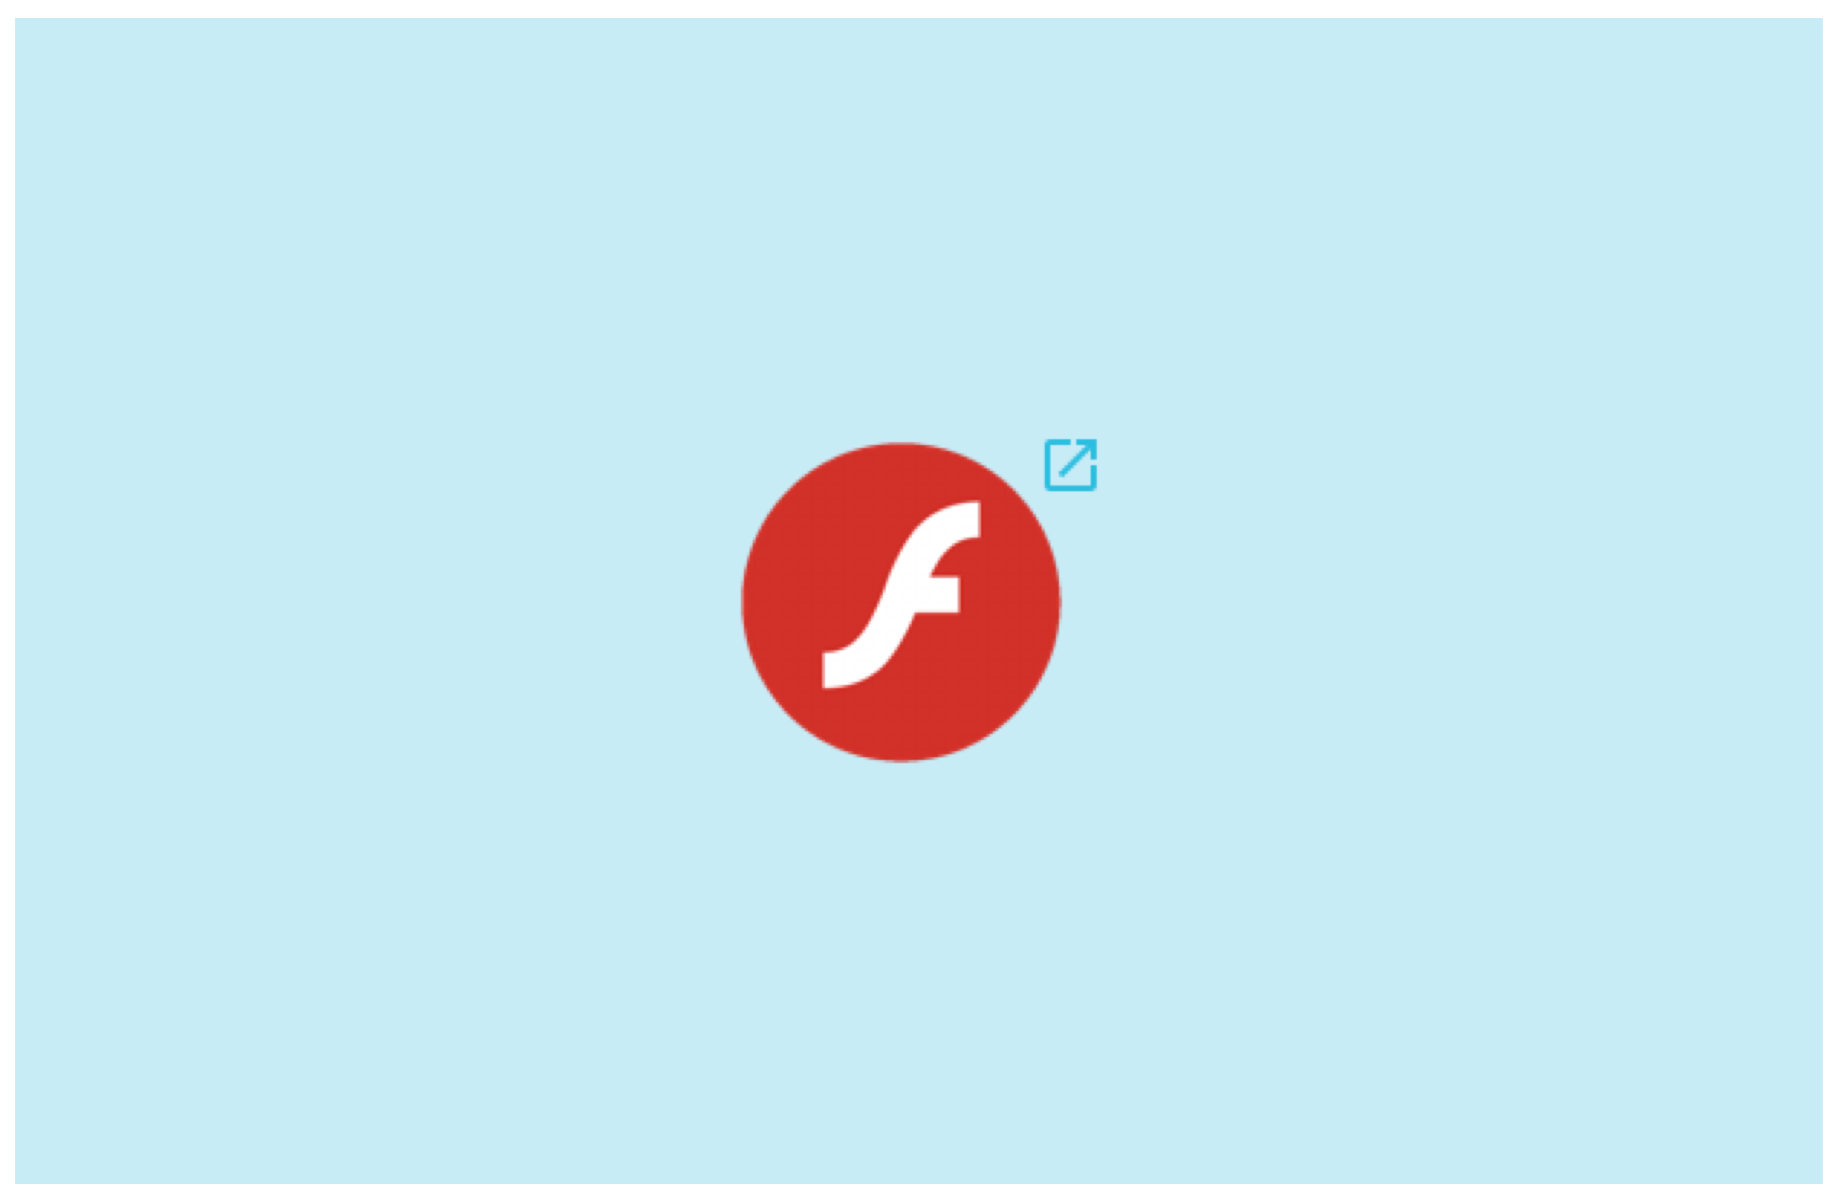 Adobe Flash content is not supported in SMART Notebook but